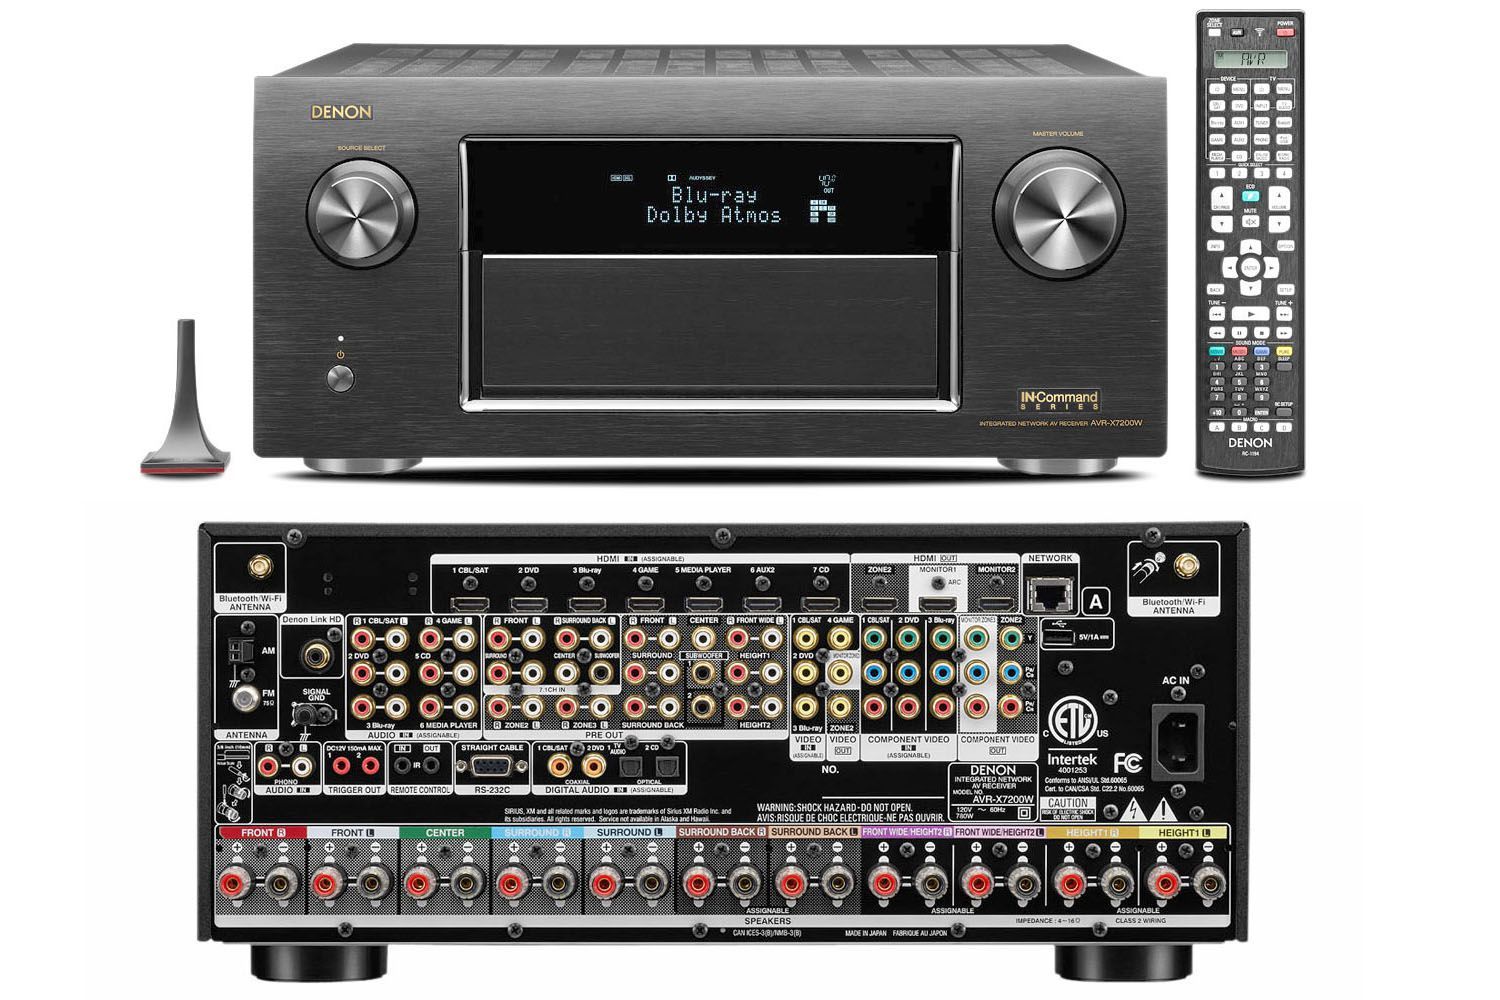 denon 39 s avr x7200wa receiver features dolby atmos dts x and auro 3d. Black Bedroom Furniture Sets. Home Design Ideas